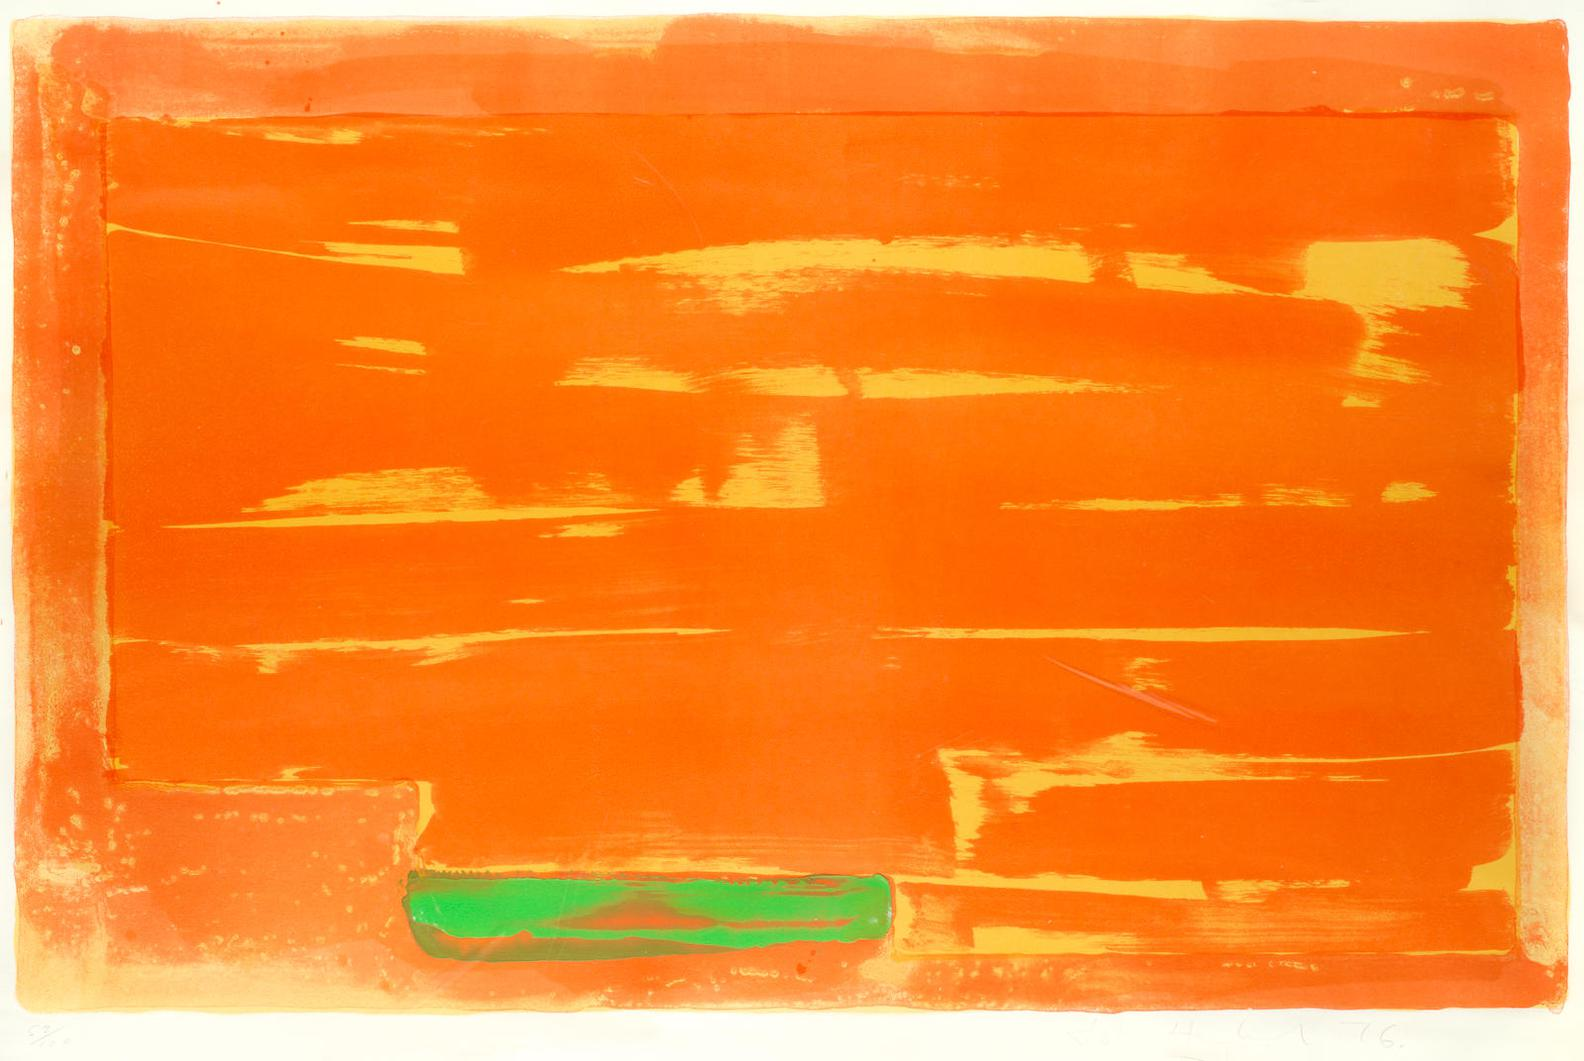 John Hoyland-Homage To Constable-1976